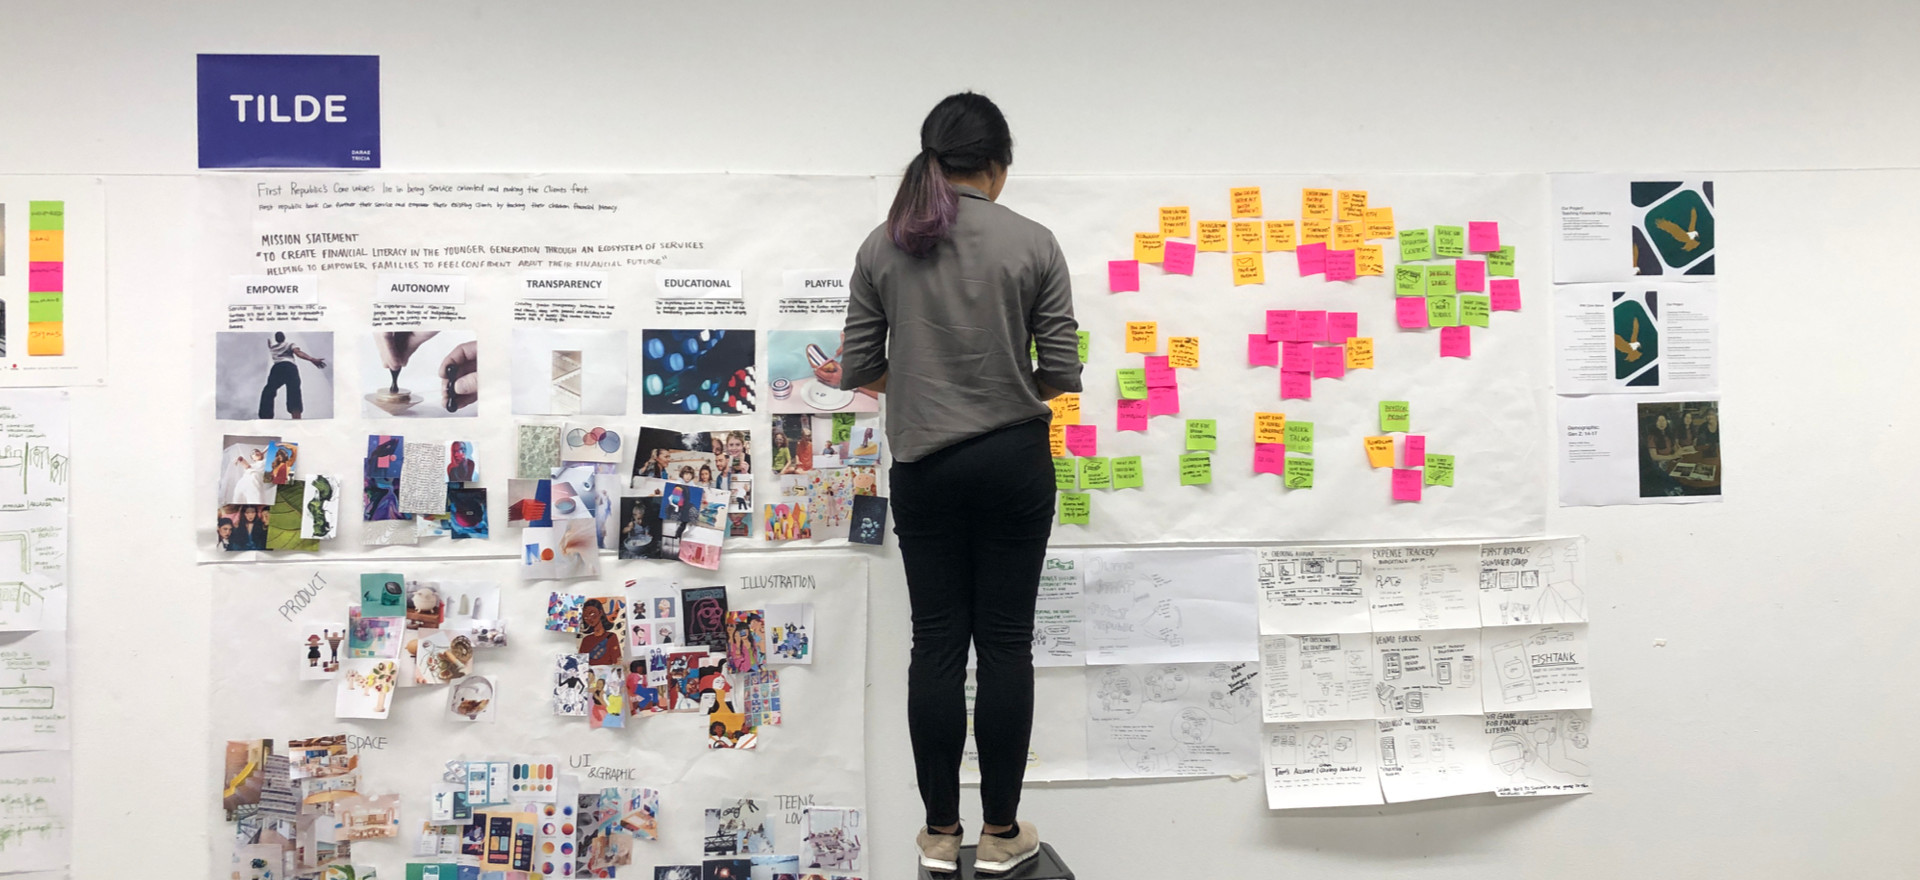 Moodboards and Ideation